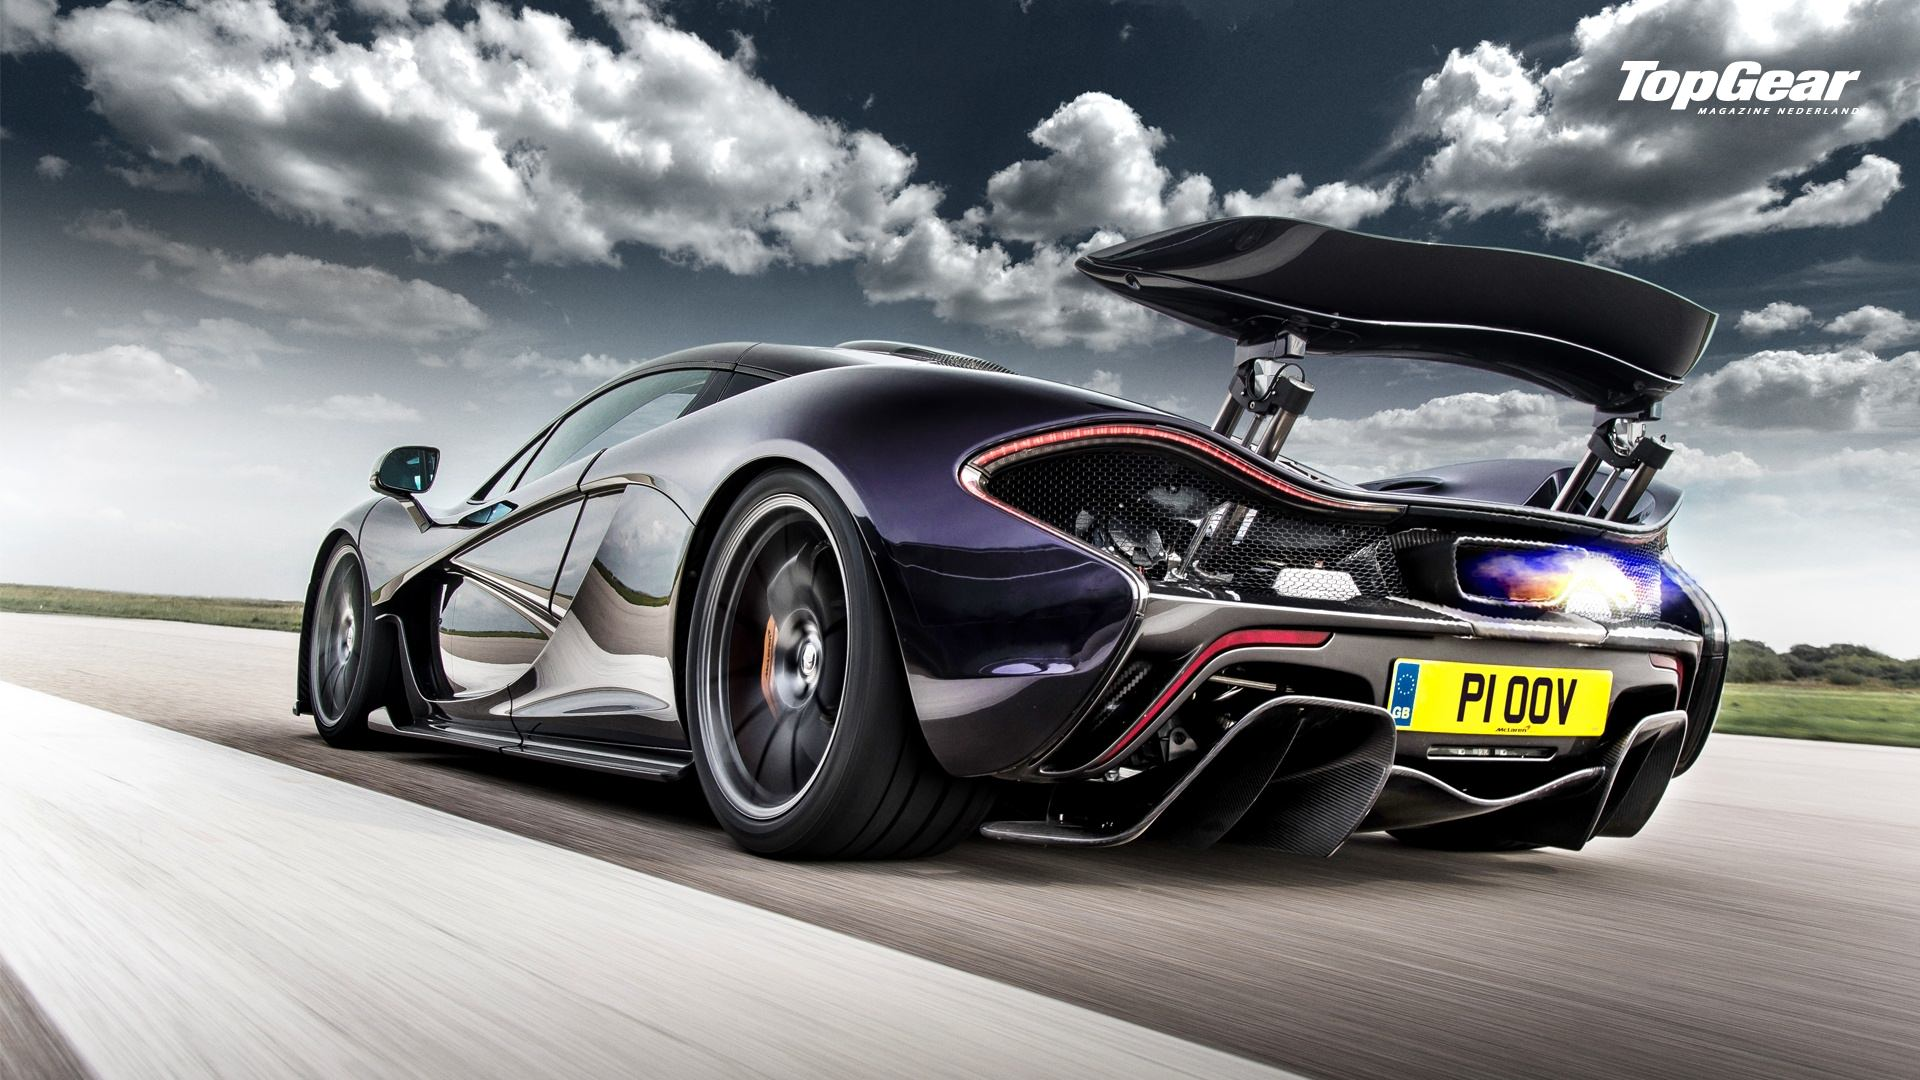 Awesome-purple-McLaren-P-rear-side-view-shooting-flames-on-the-track-image-via-top-wallpaper-wpc9002472